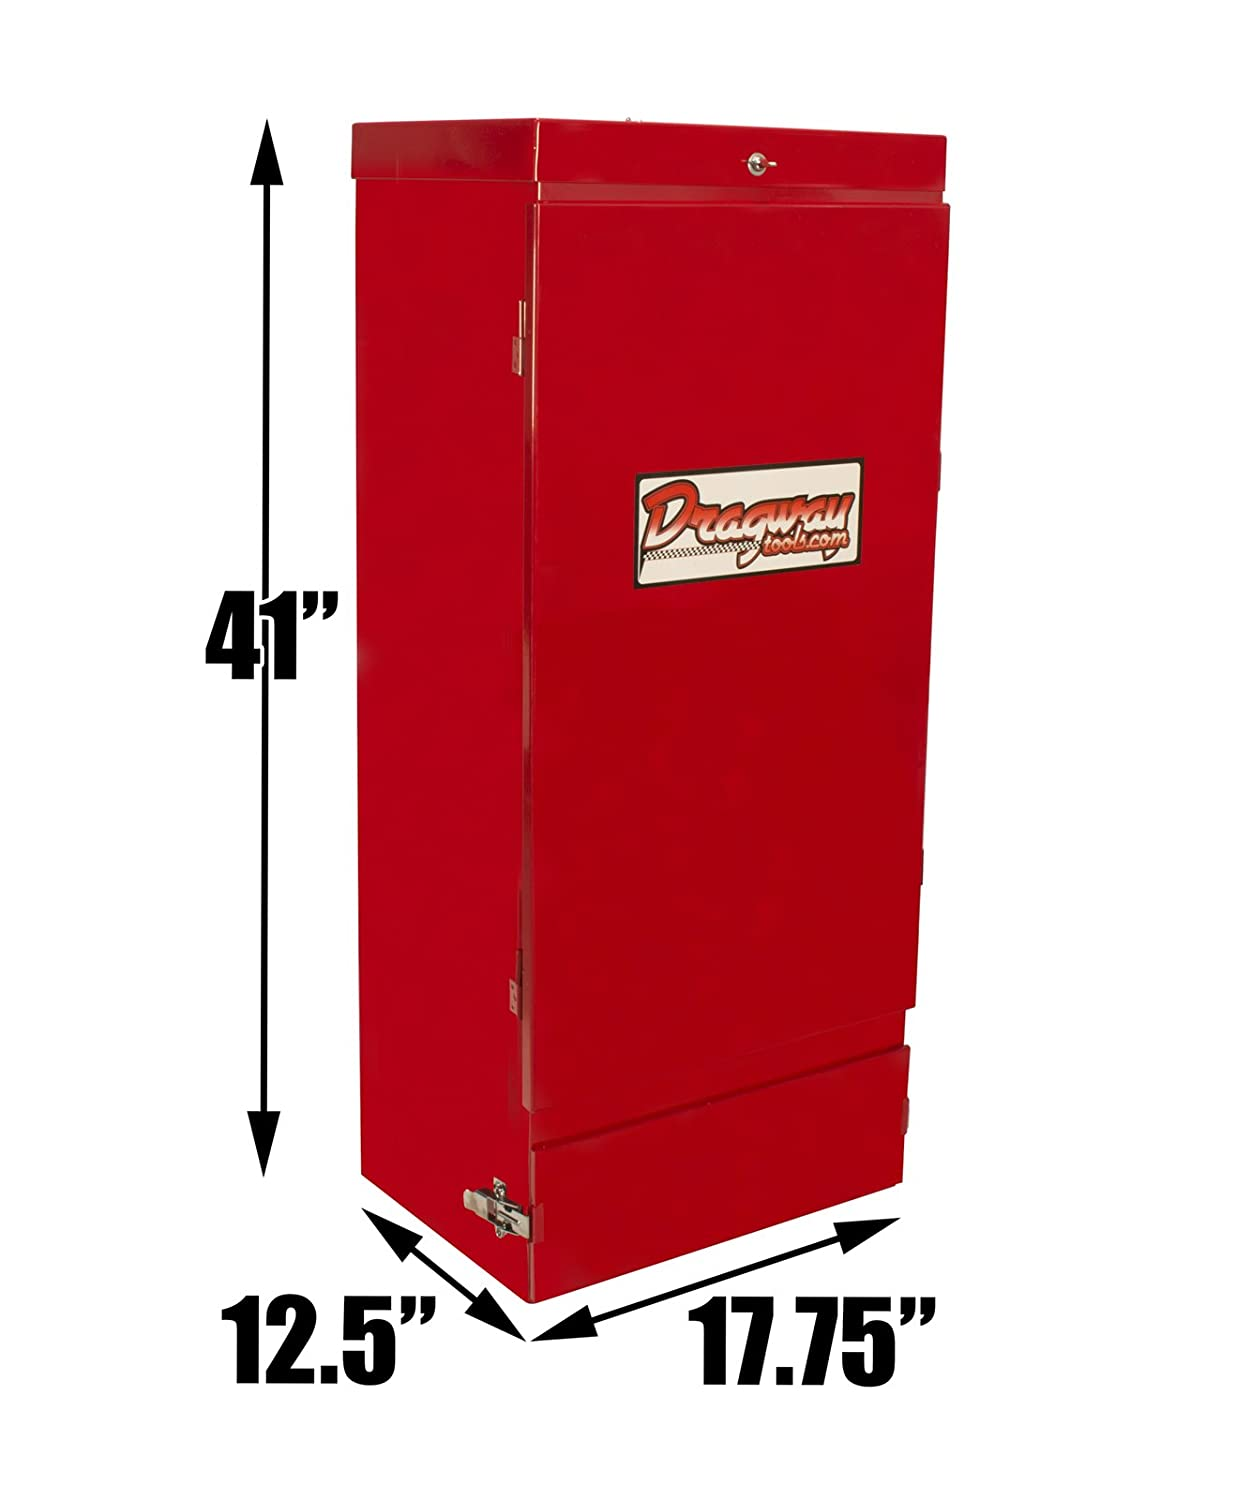 dragway tools model 60 sandblast cabinet with floor standing dust collector amazoncom